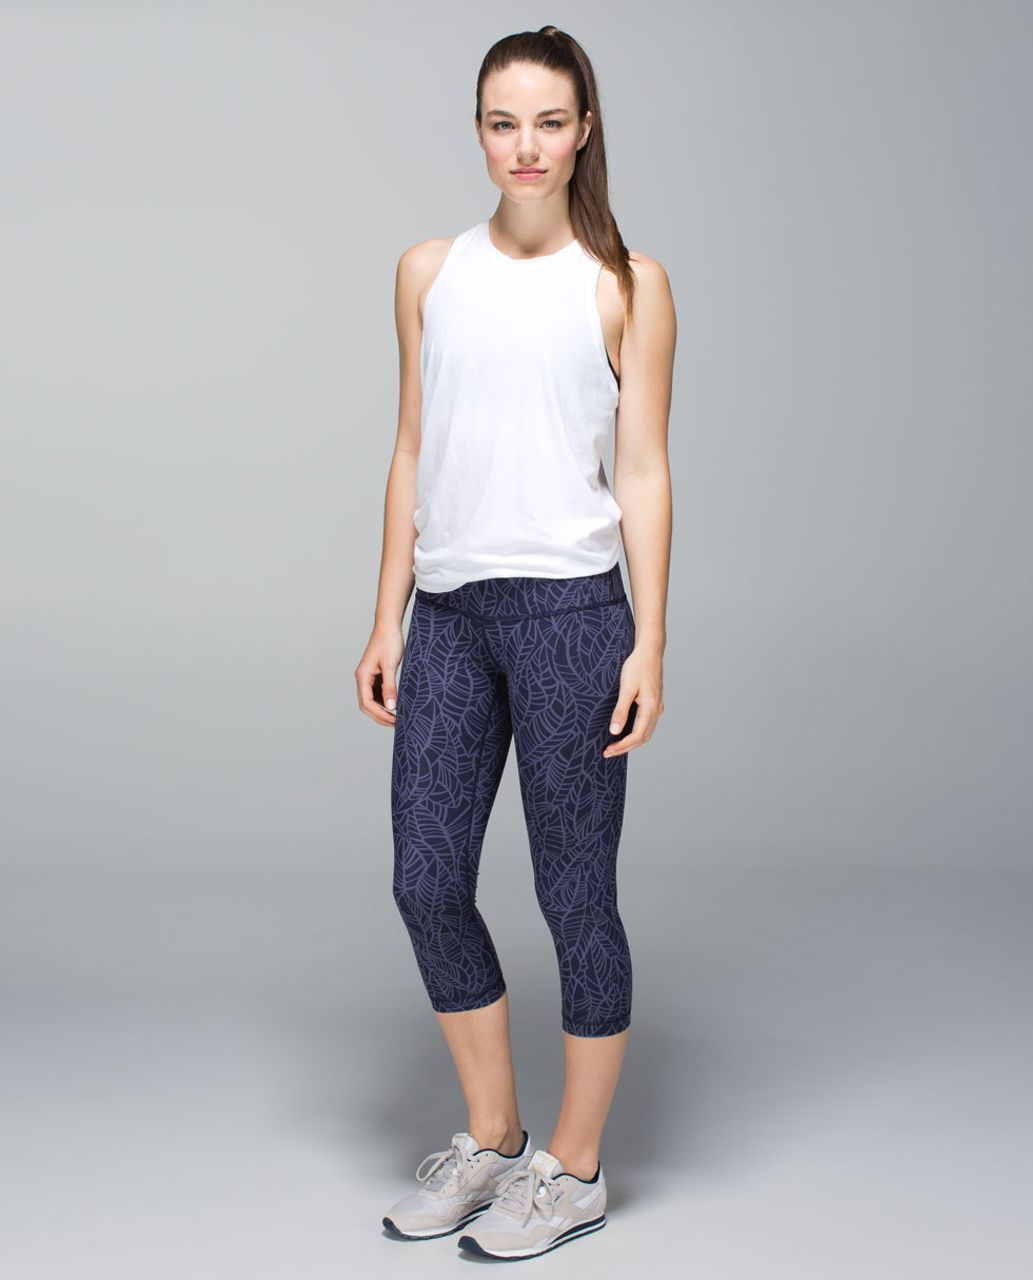 Lululemon Wunder Under Crop *Full-On Luxtreme - Pretty Palm Cadet Greyvy